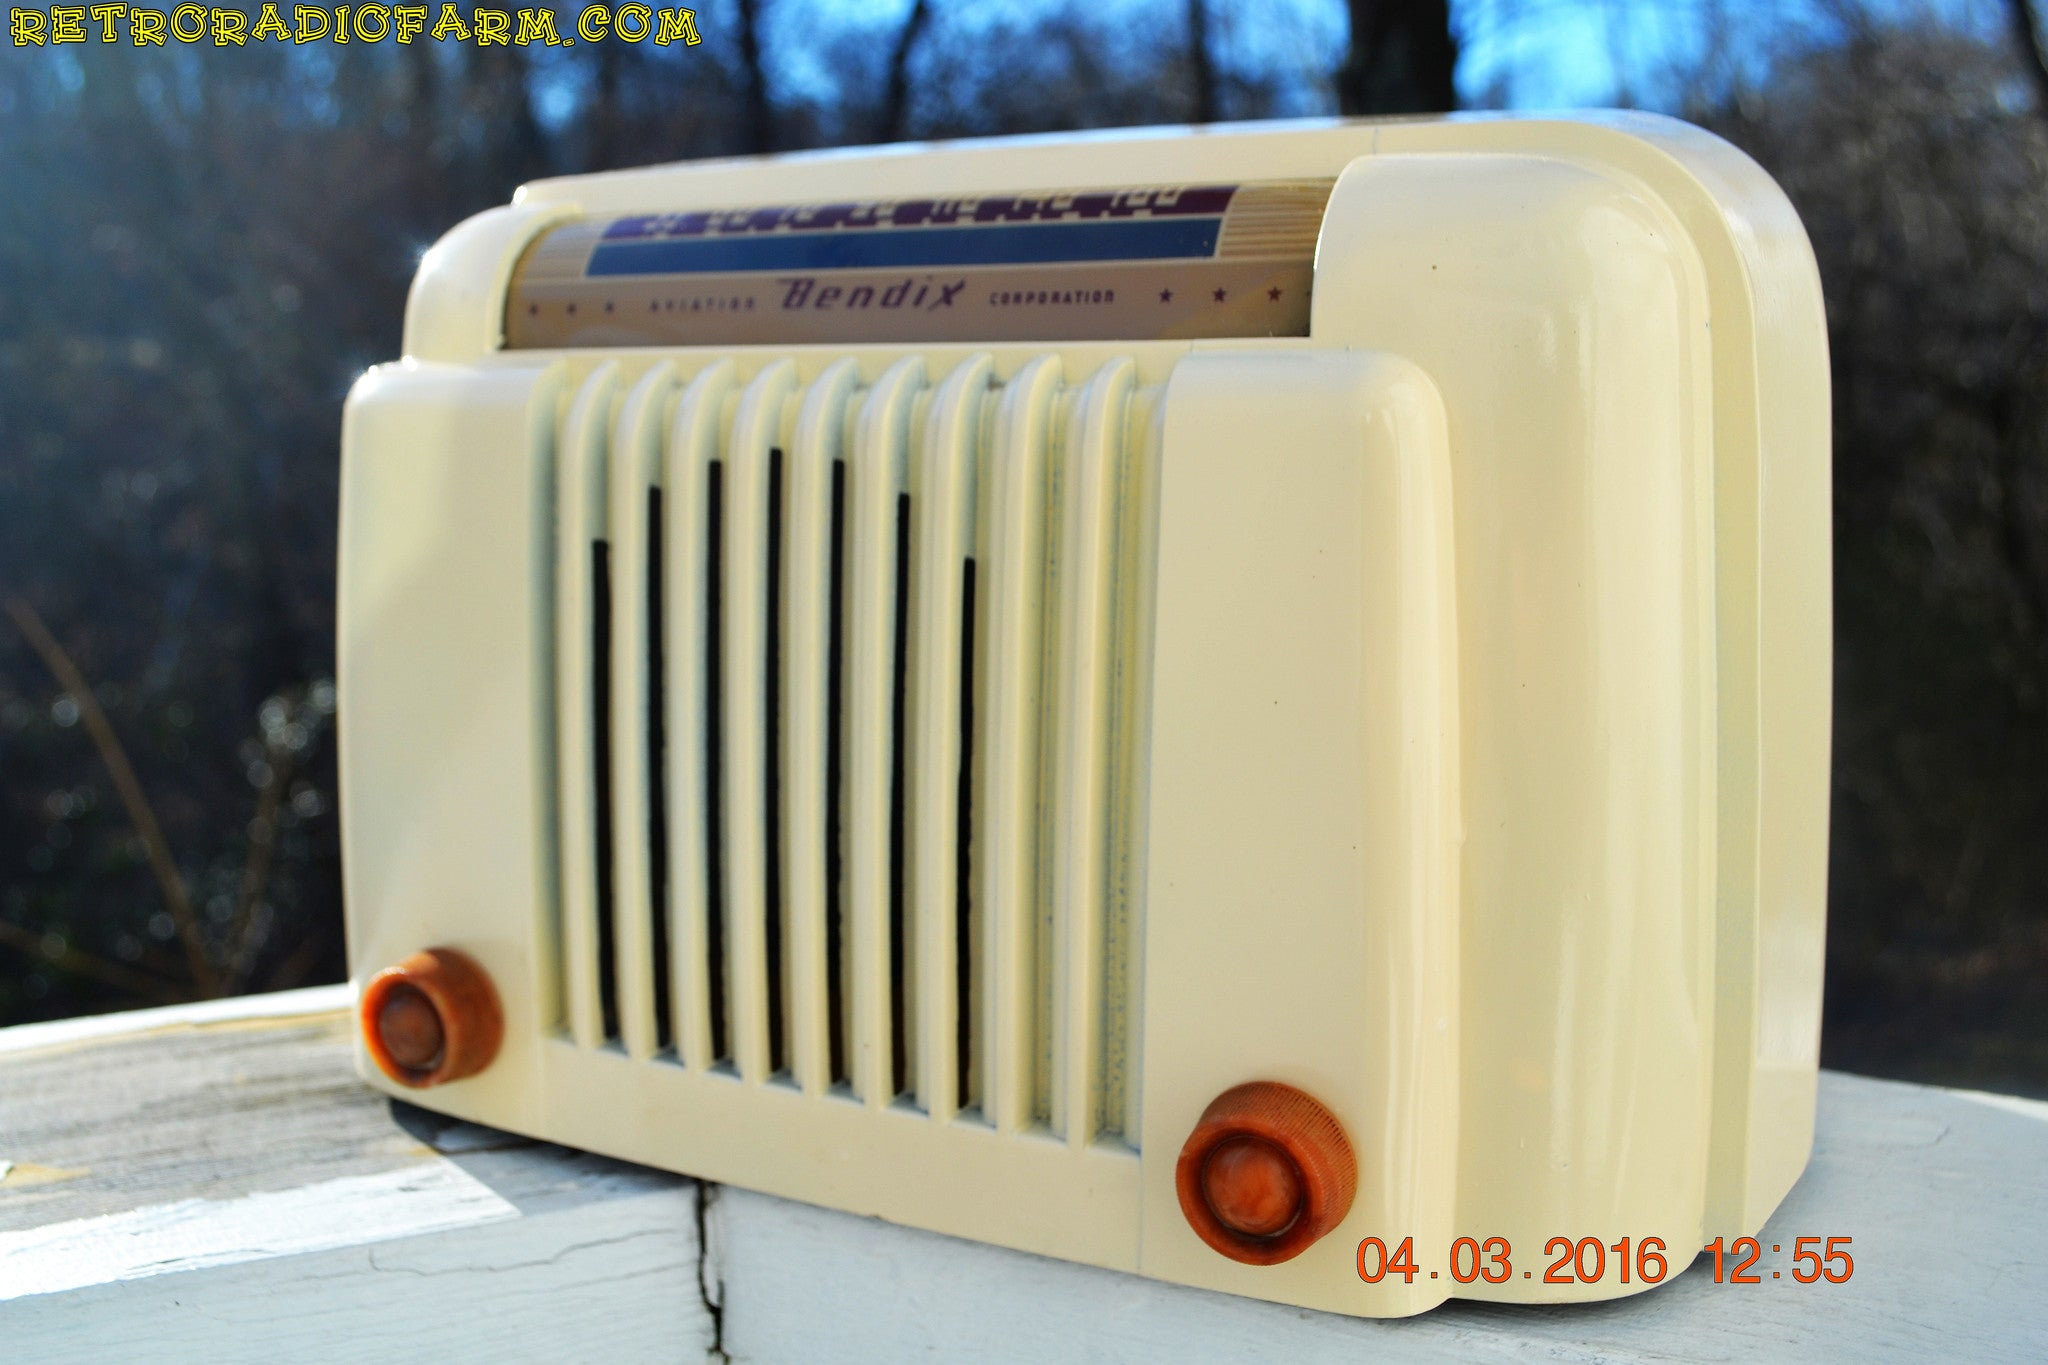 SOLD! - Apr 15, 2016 - CLASSIC 1947 Ivory Bendix Aviation Model 526A Bakelite AM Tube AM Radio Totally Restored! , Vintage Radio - Bendix Aviation, Retro Radio Farm  - 1